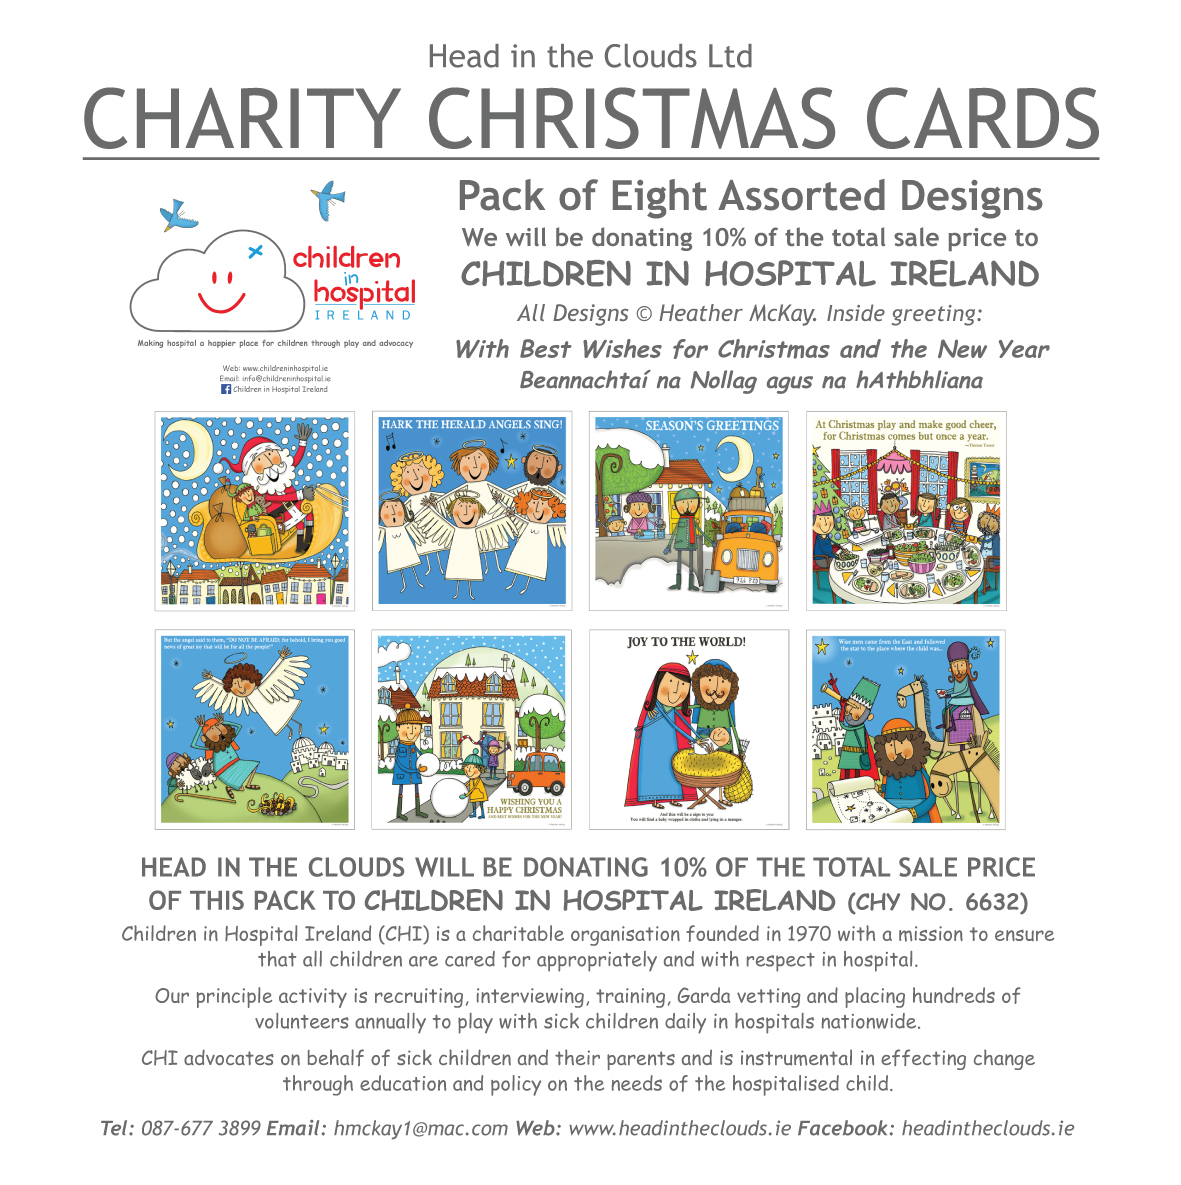 CHI Charity Christmas Cards—Pack of Eight Assorted Designs - Head in ...